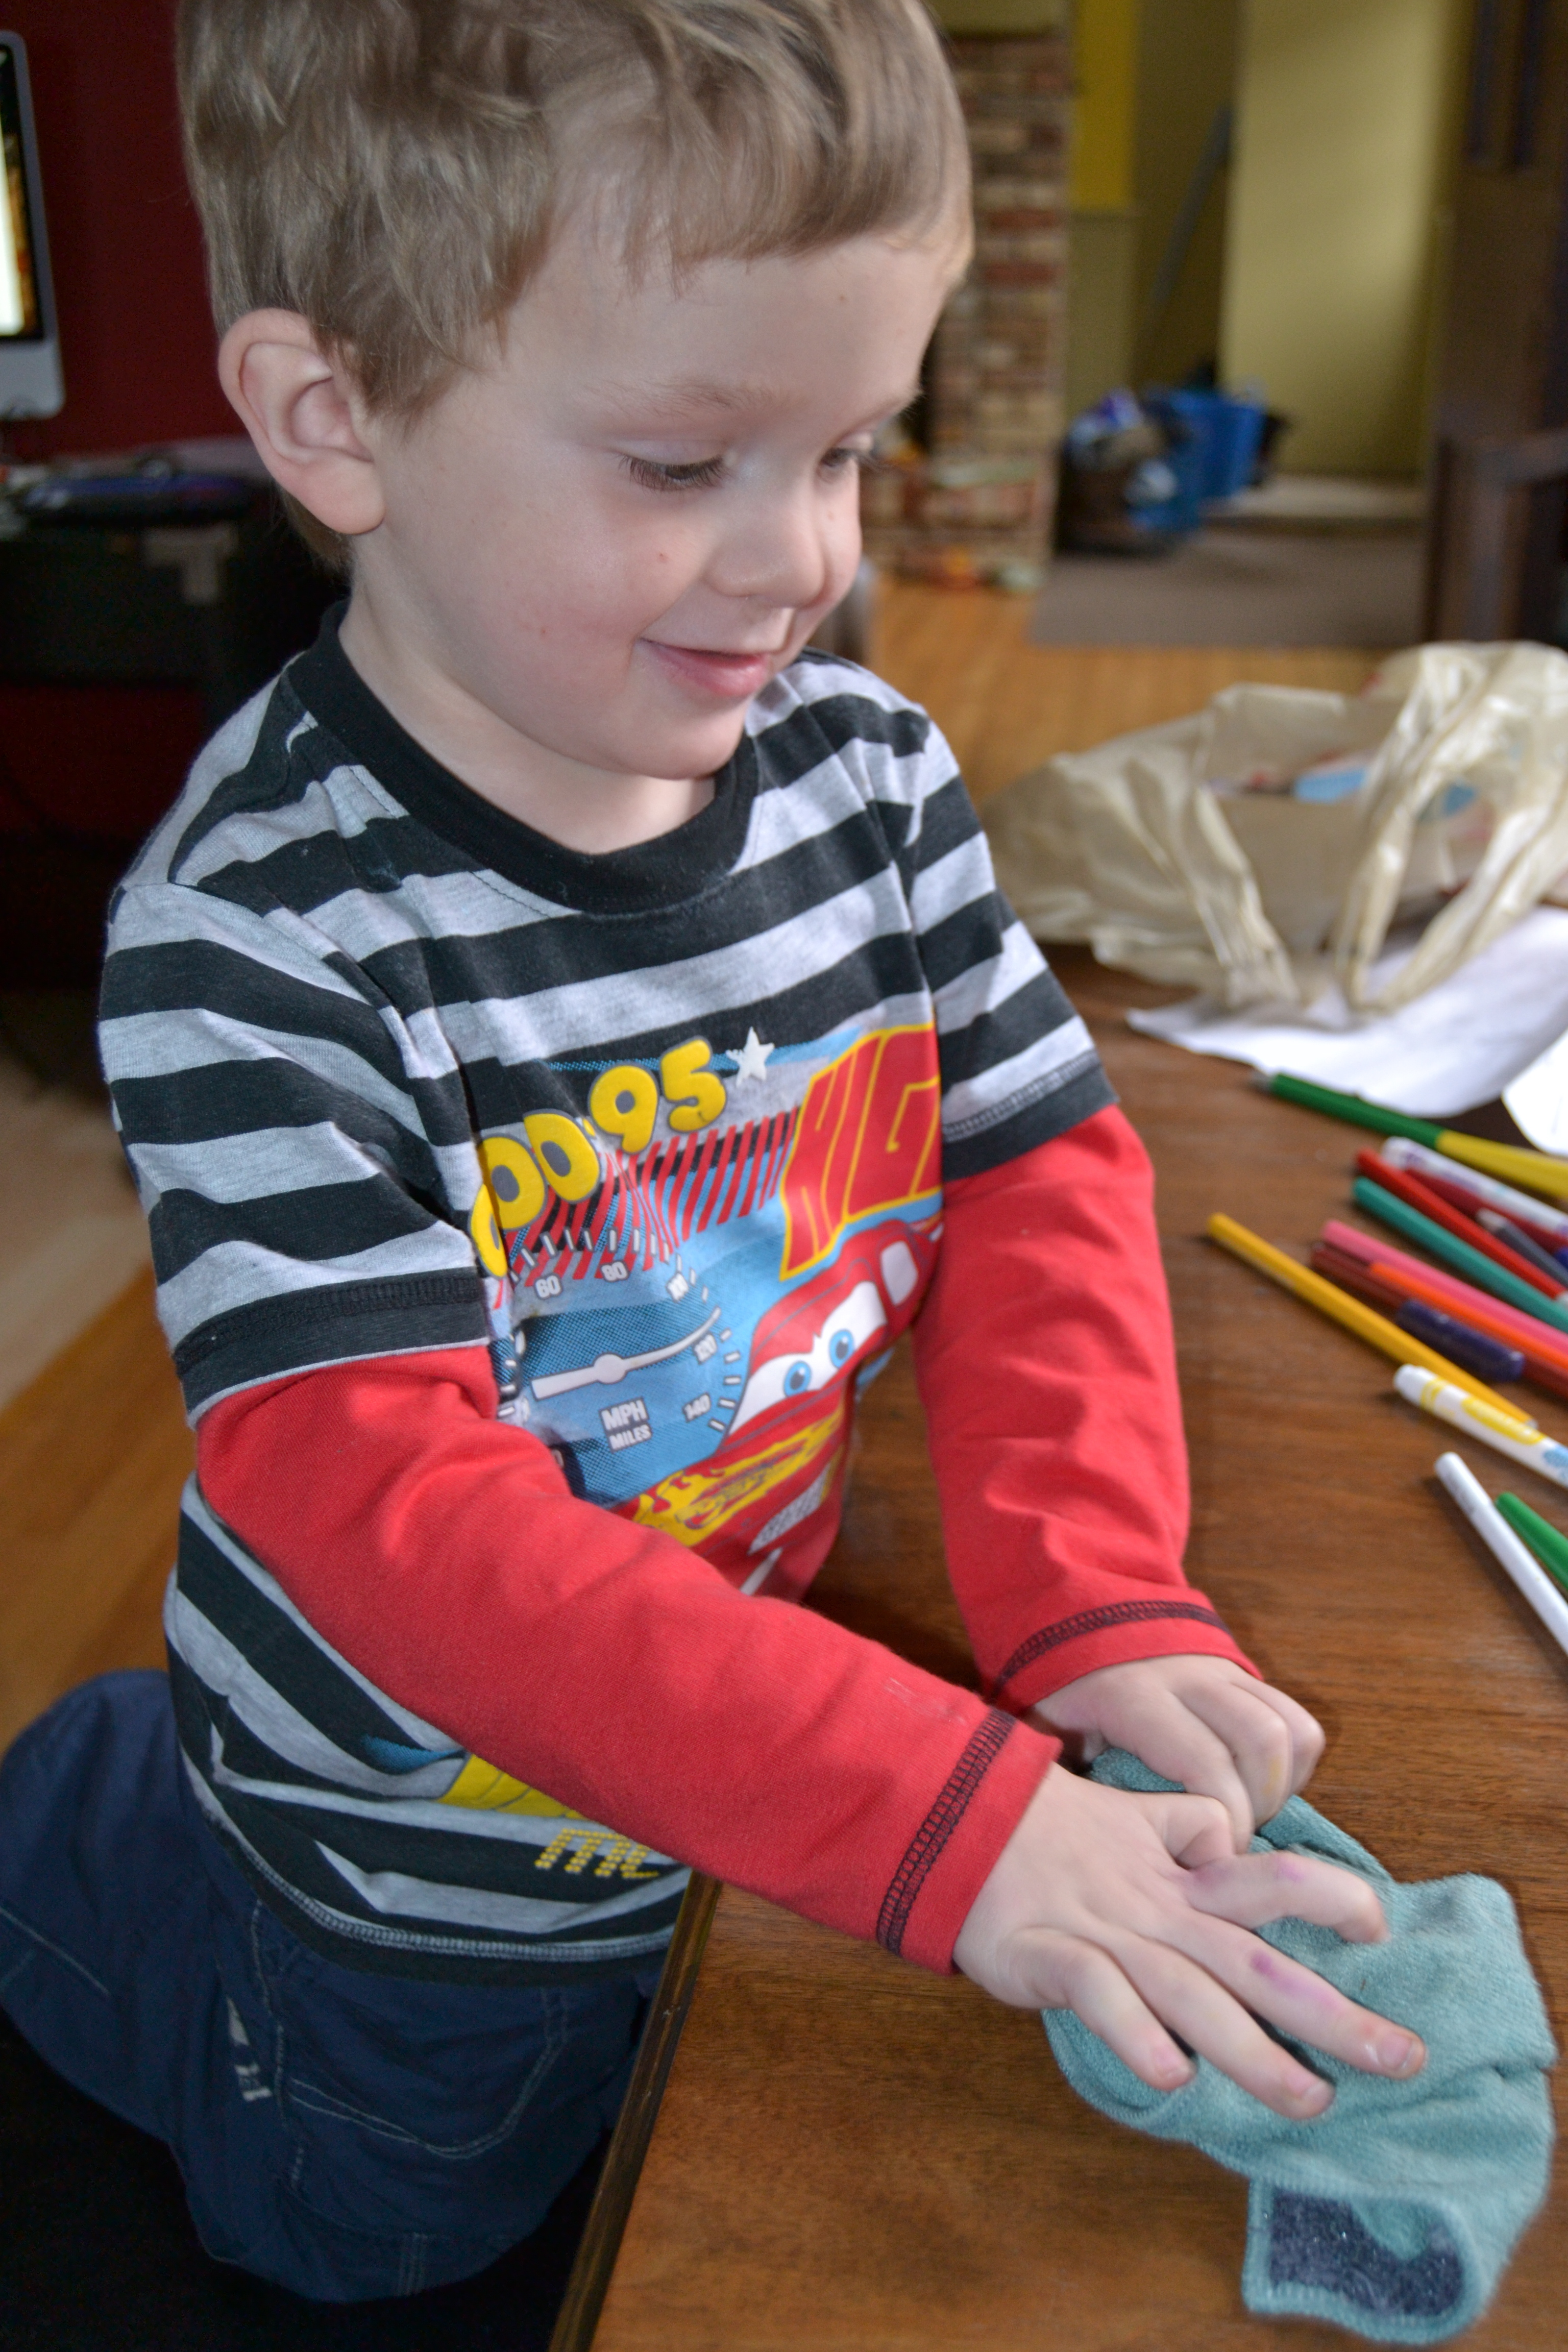 Zander using the kitchen e-cloth to wipe up marker and paint from the table